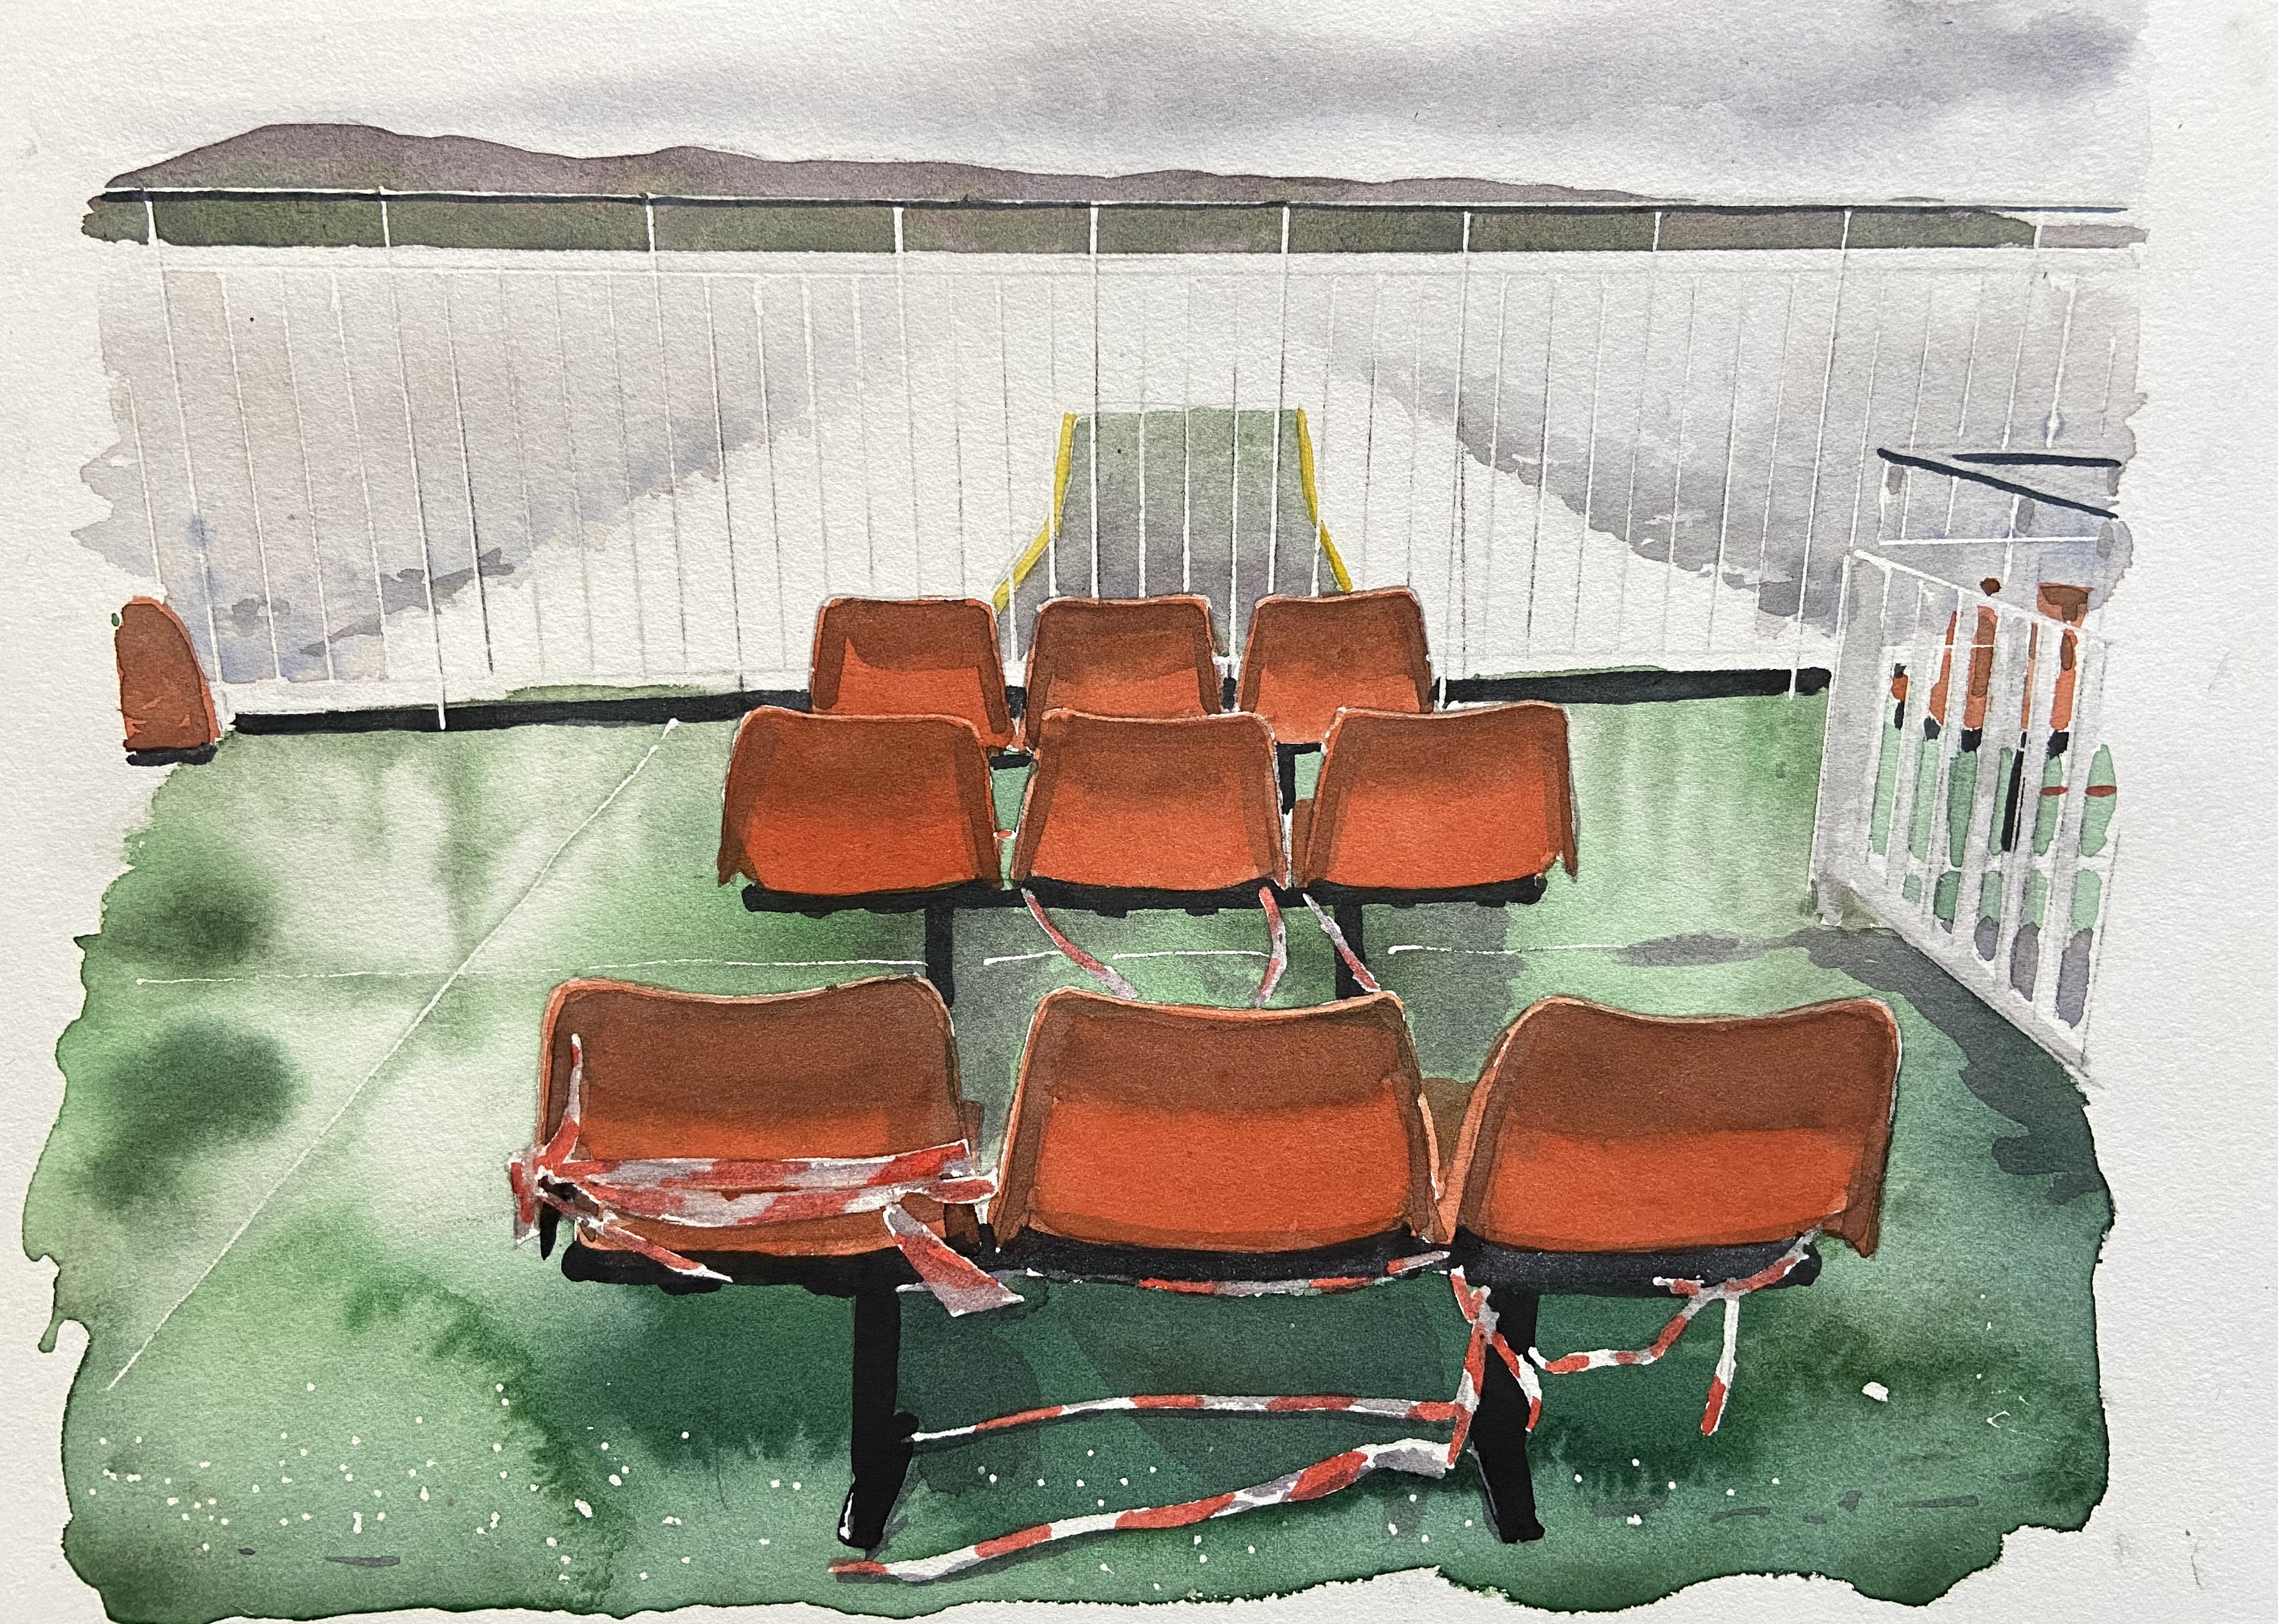 Untitled (Bench) 37